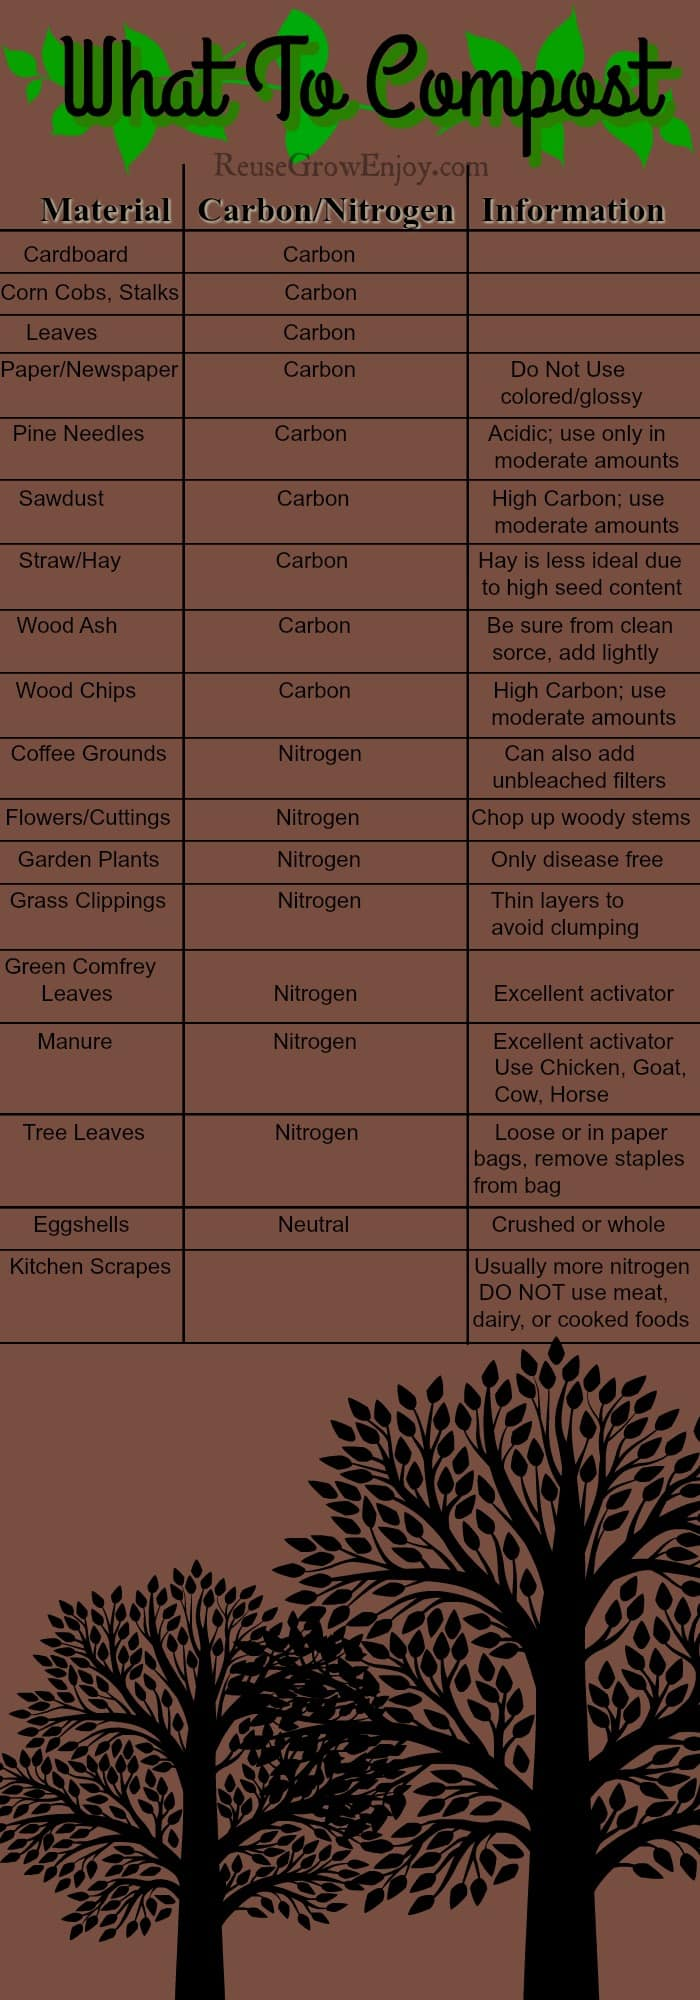 What To Compost Chart